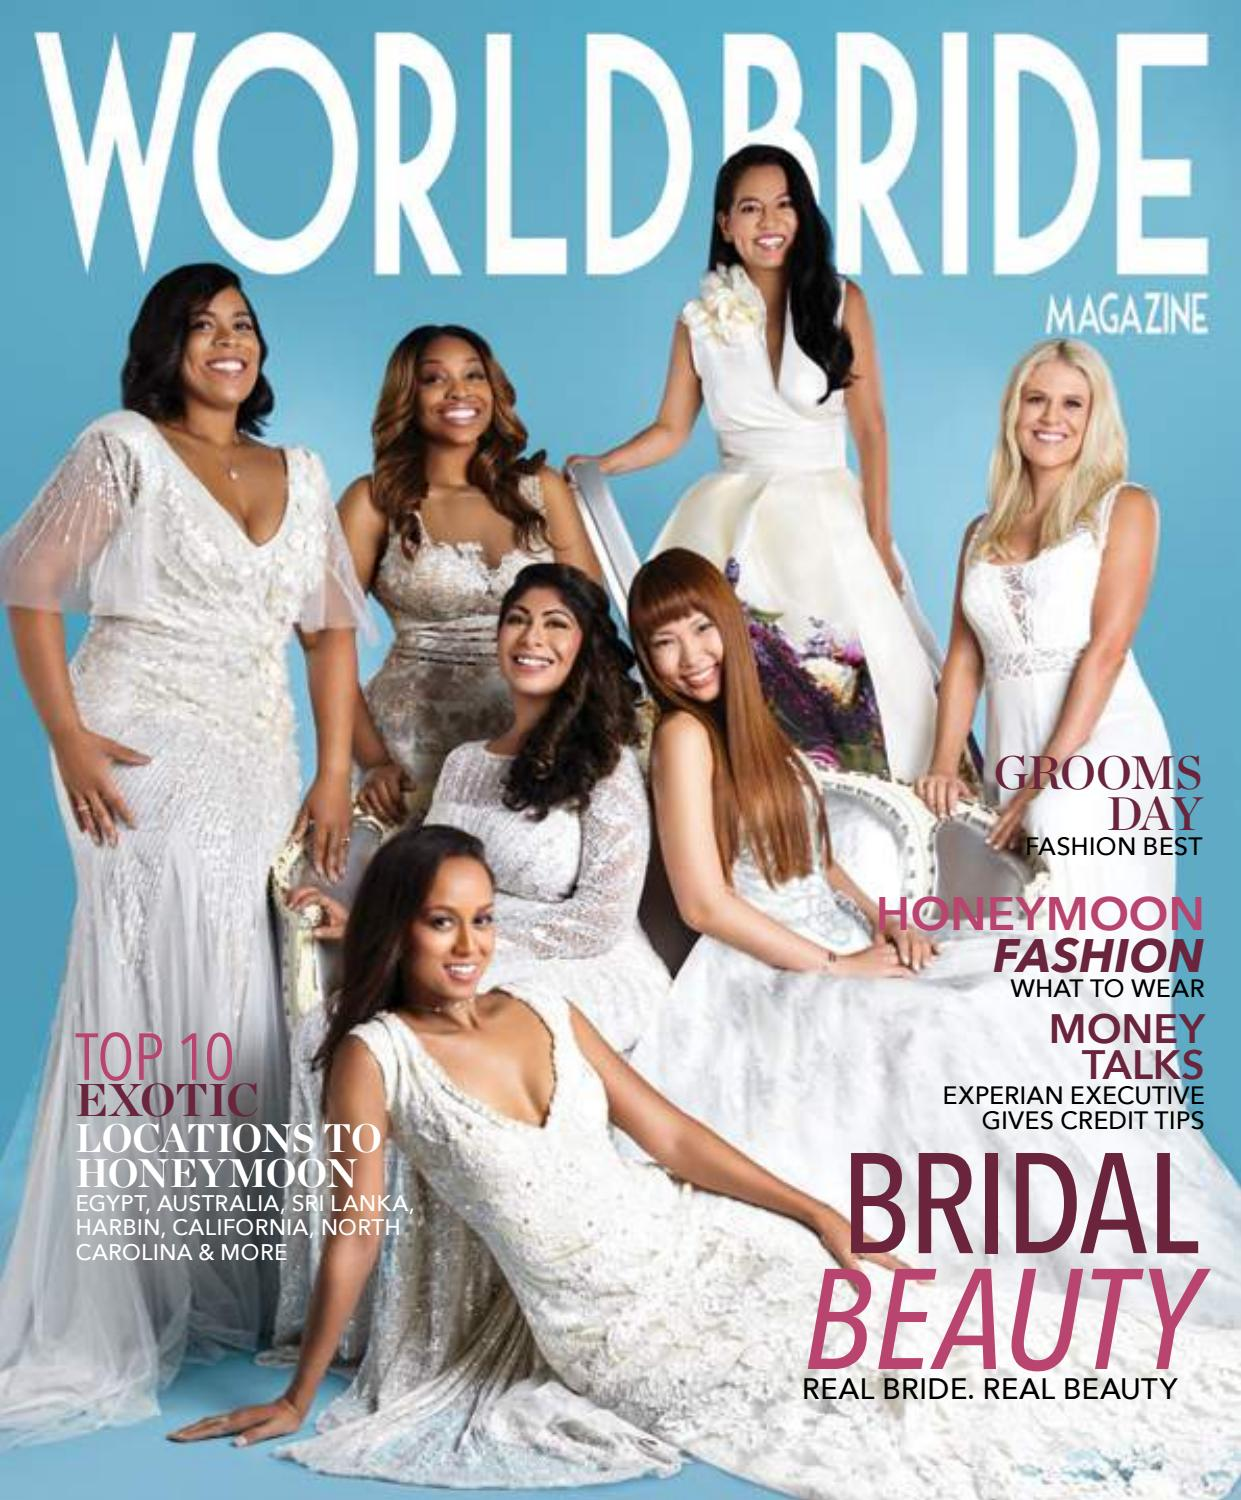 World Bride Magazine Wbm Summer Special 2017 By World Bride